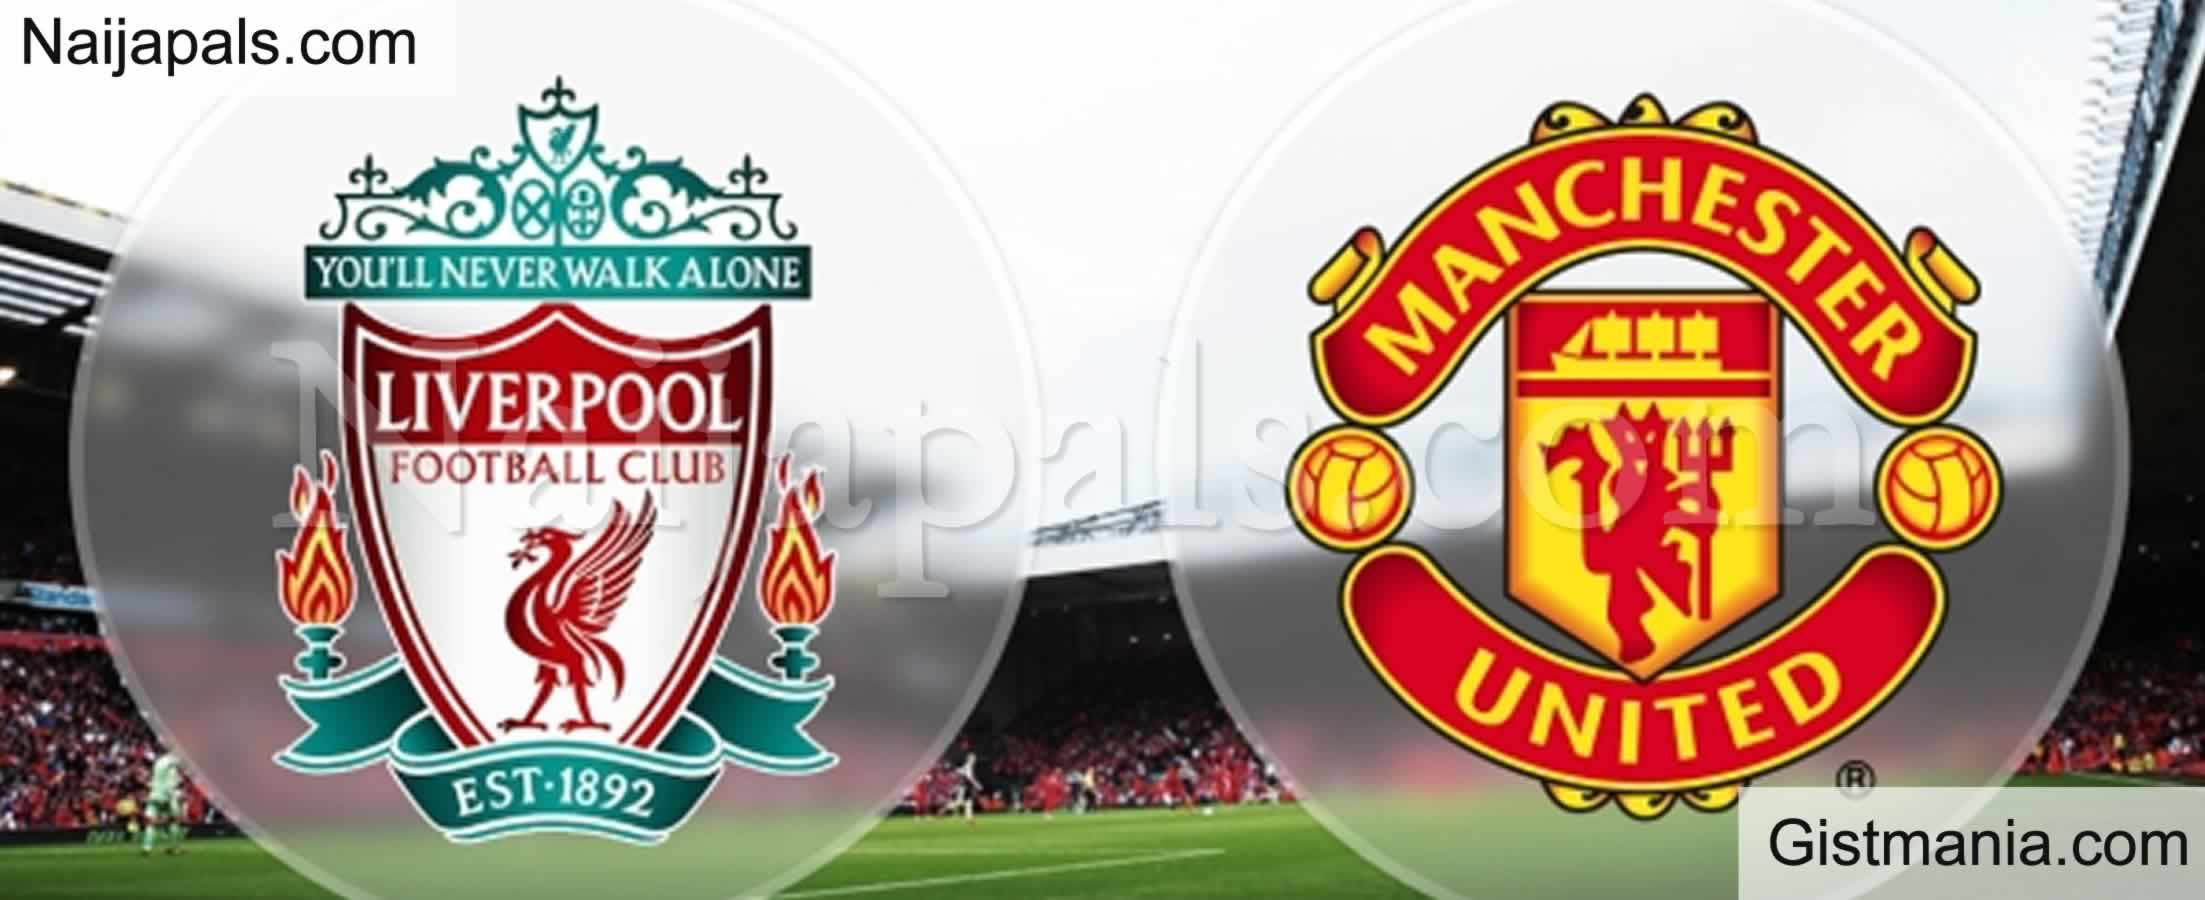 <img alt='.' class='lazyload' data-src='https://img.gistmania.com/emot/soccer.gif' /> <b>Liverpool v Manchester United : English Premier League Match, Team News, Goal Scorers and Stats</b>